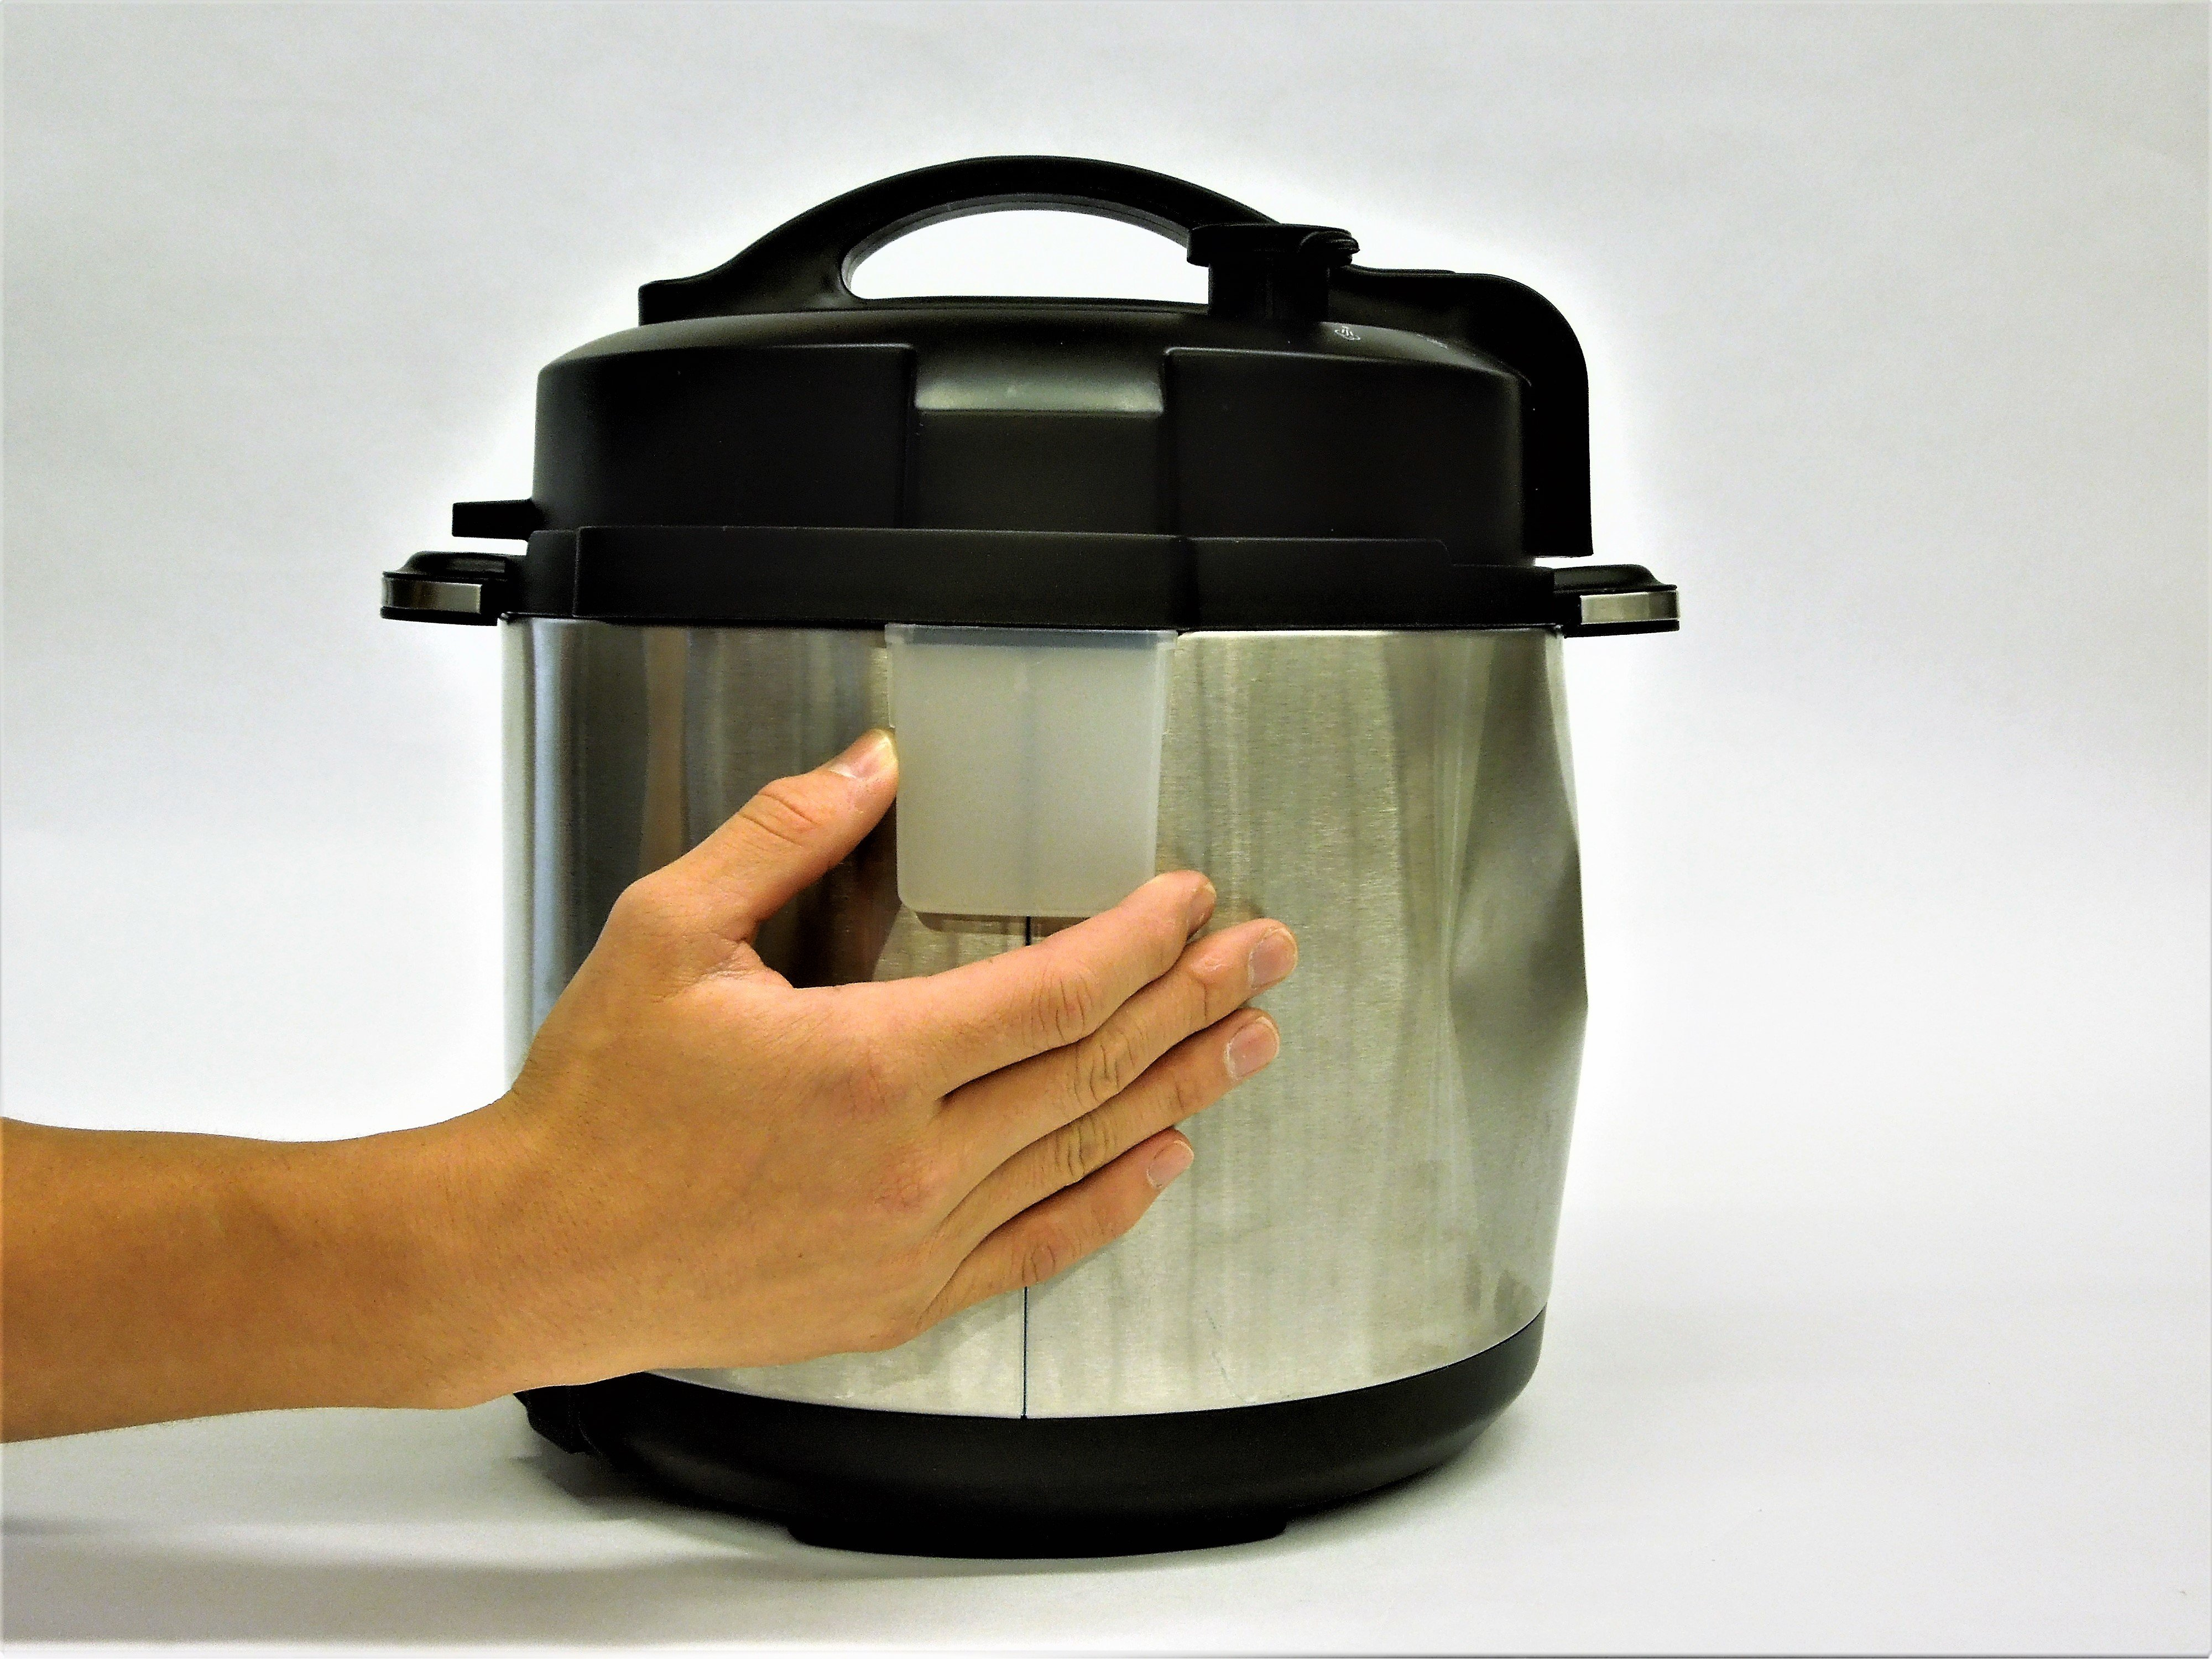 Crock-Pot Express Crock Multi-Cooker Condensation Collector Replacement -  iFixit Repair Guide